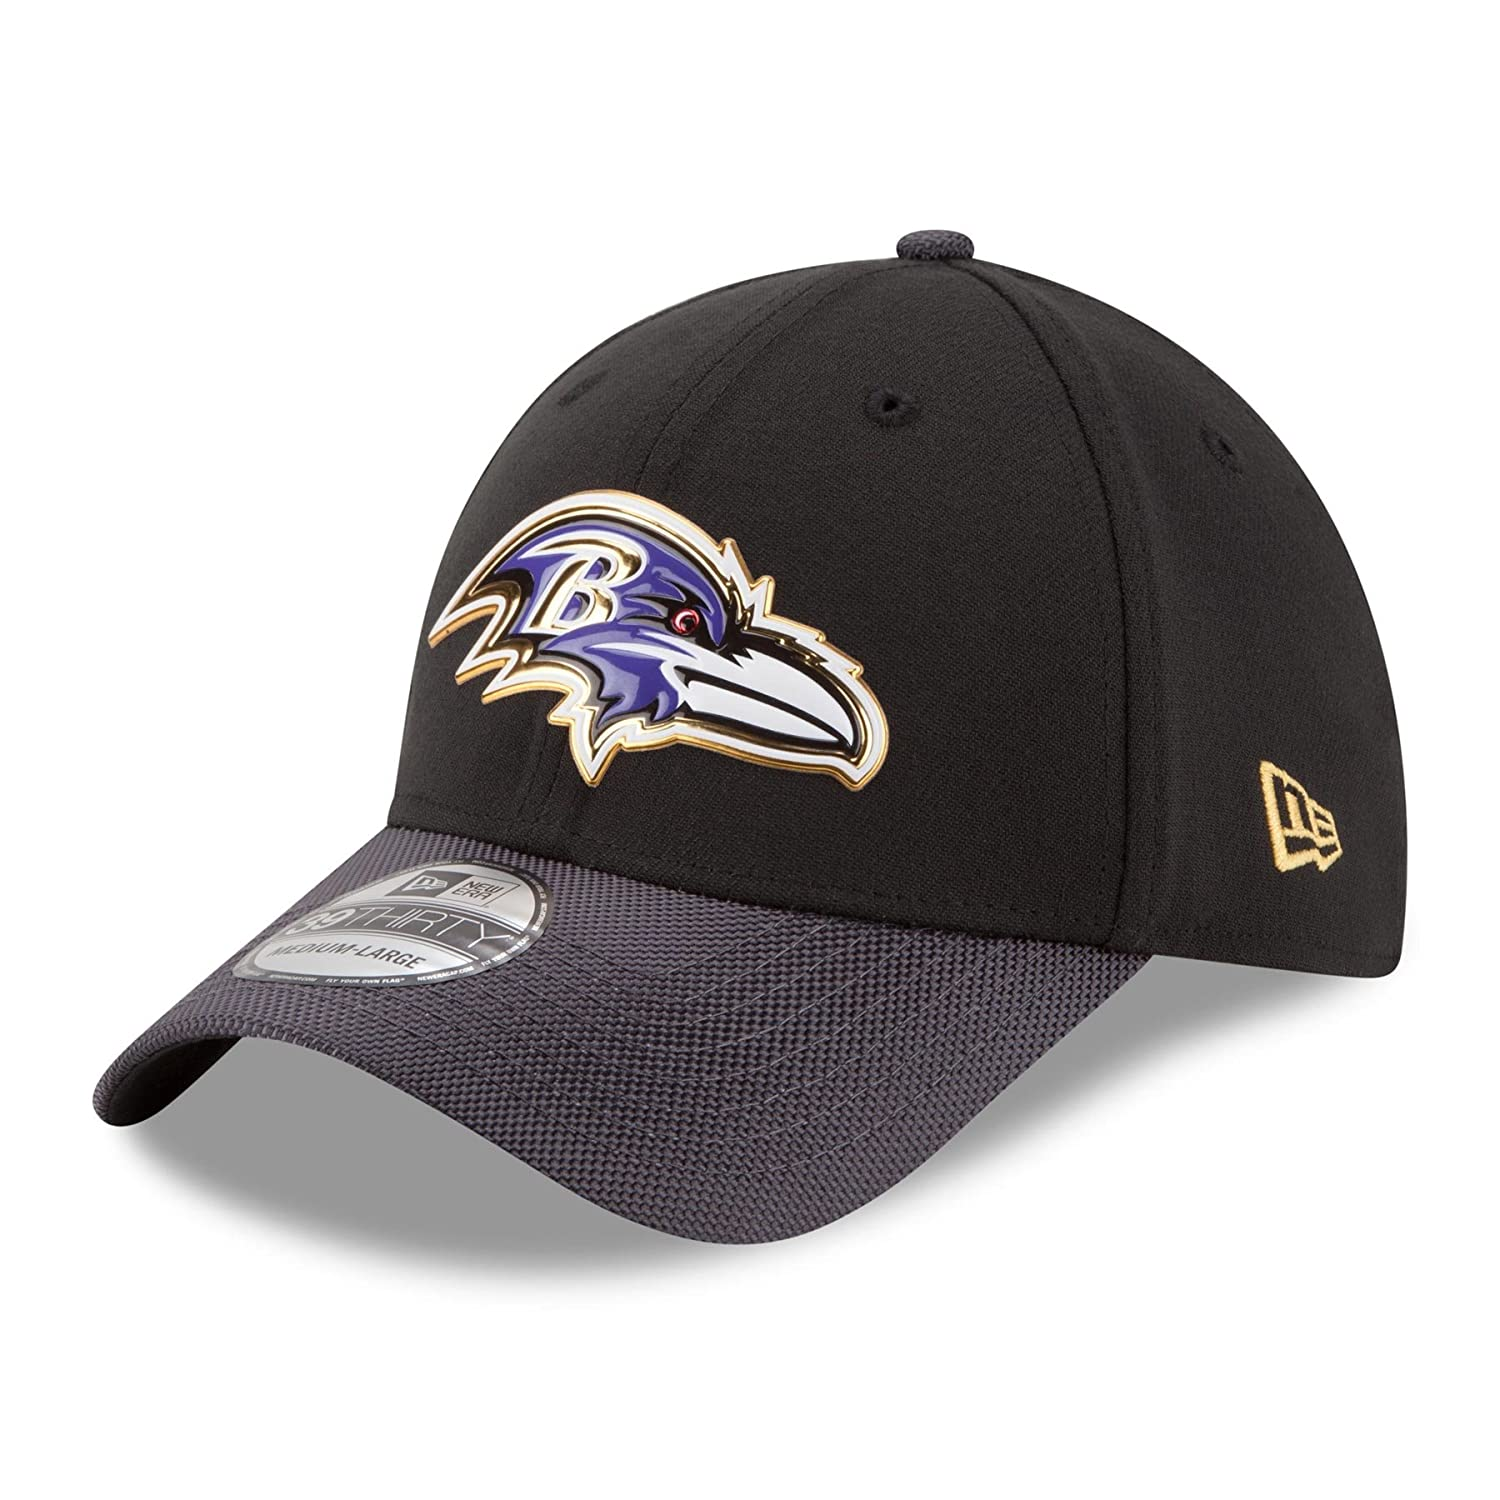 a2a9d1c21f6 Amazon.com   Baltimore Ravens New Era 39THIRTY NFL 2015 Gold On-Field  Performance Flex Hat   Sports   Outdoors